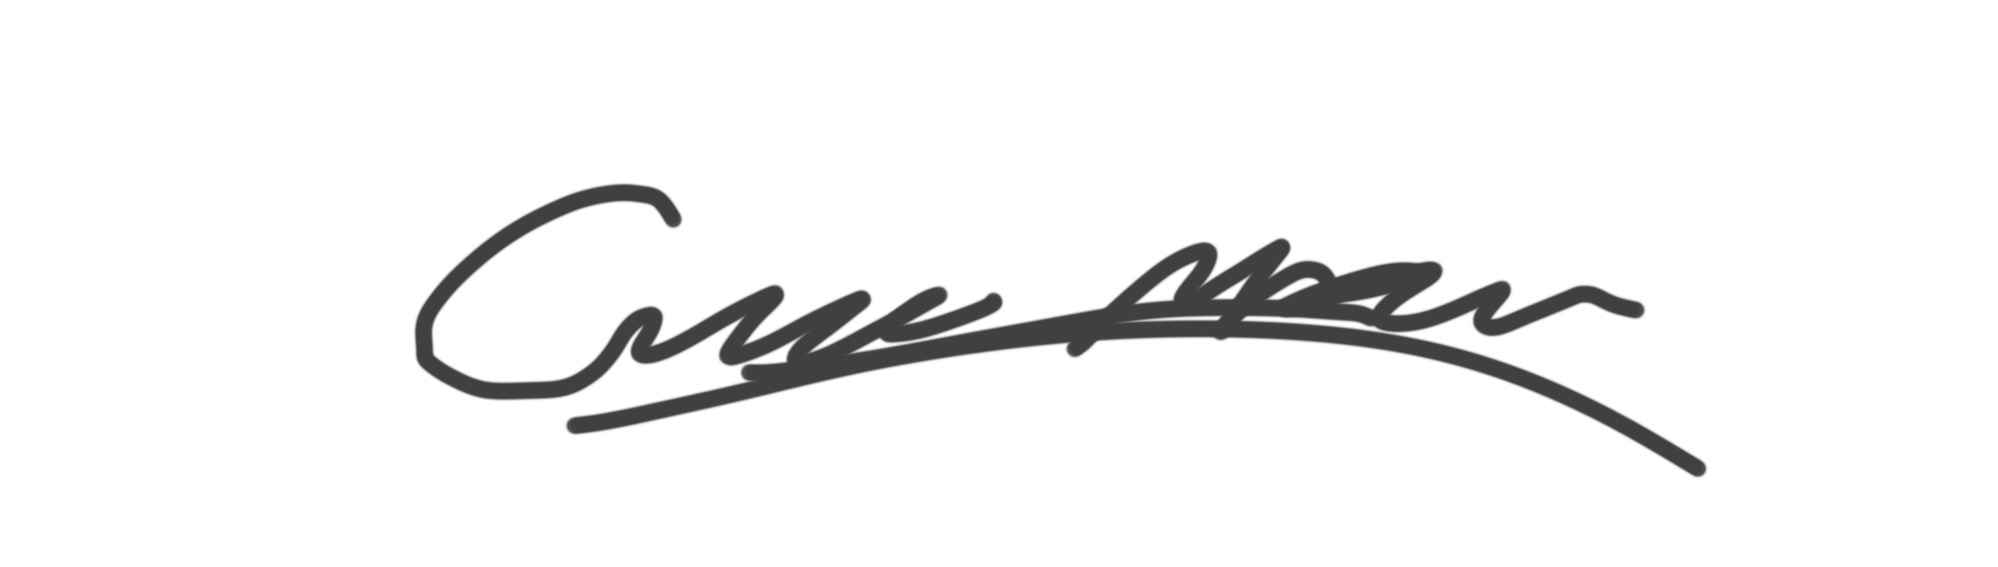 casey mcclintic's Signature